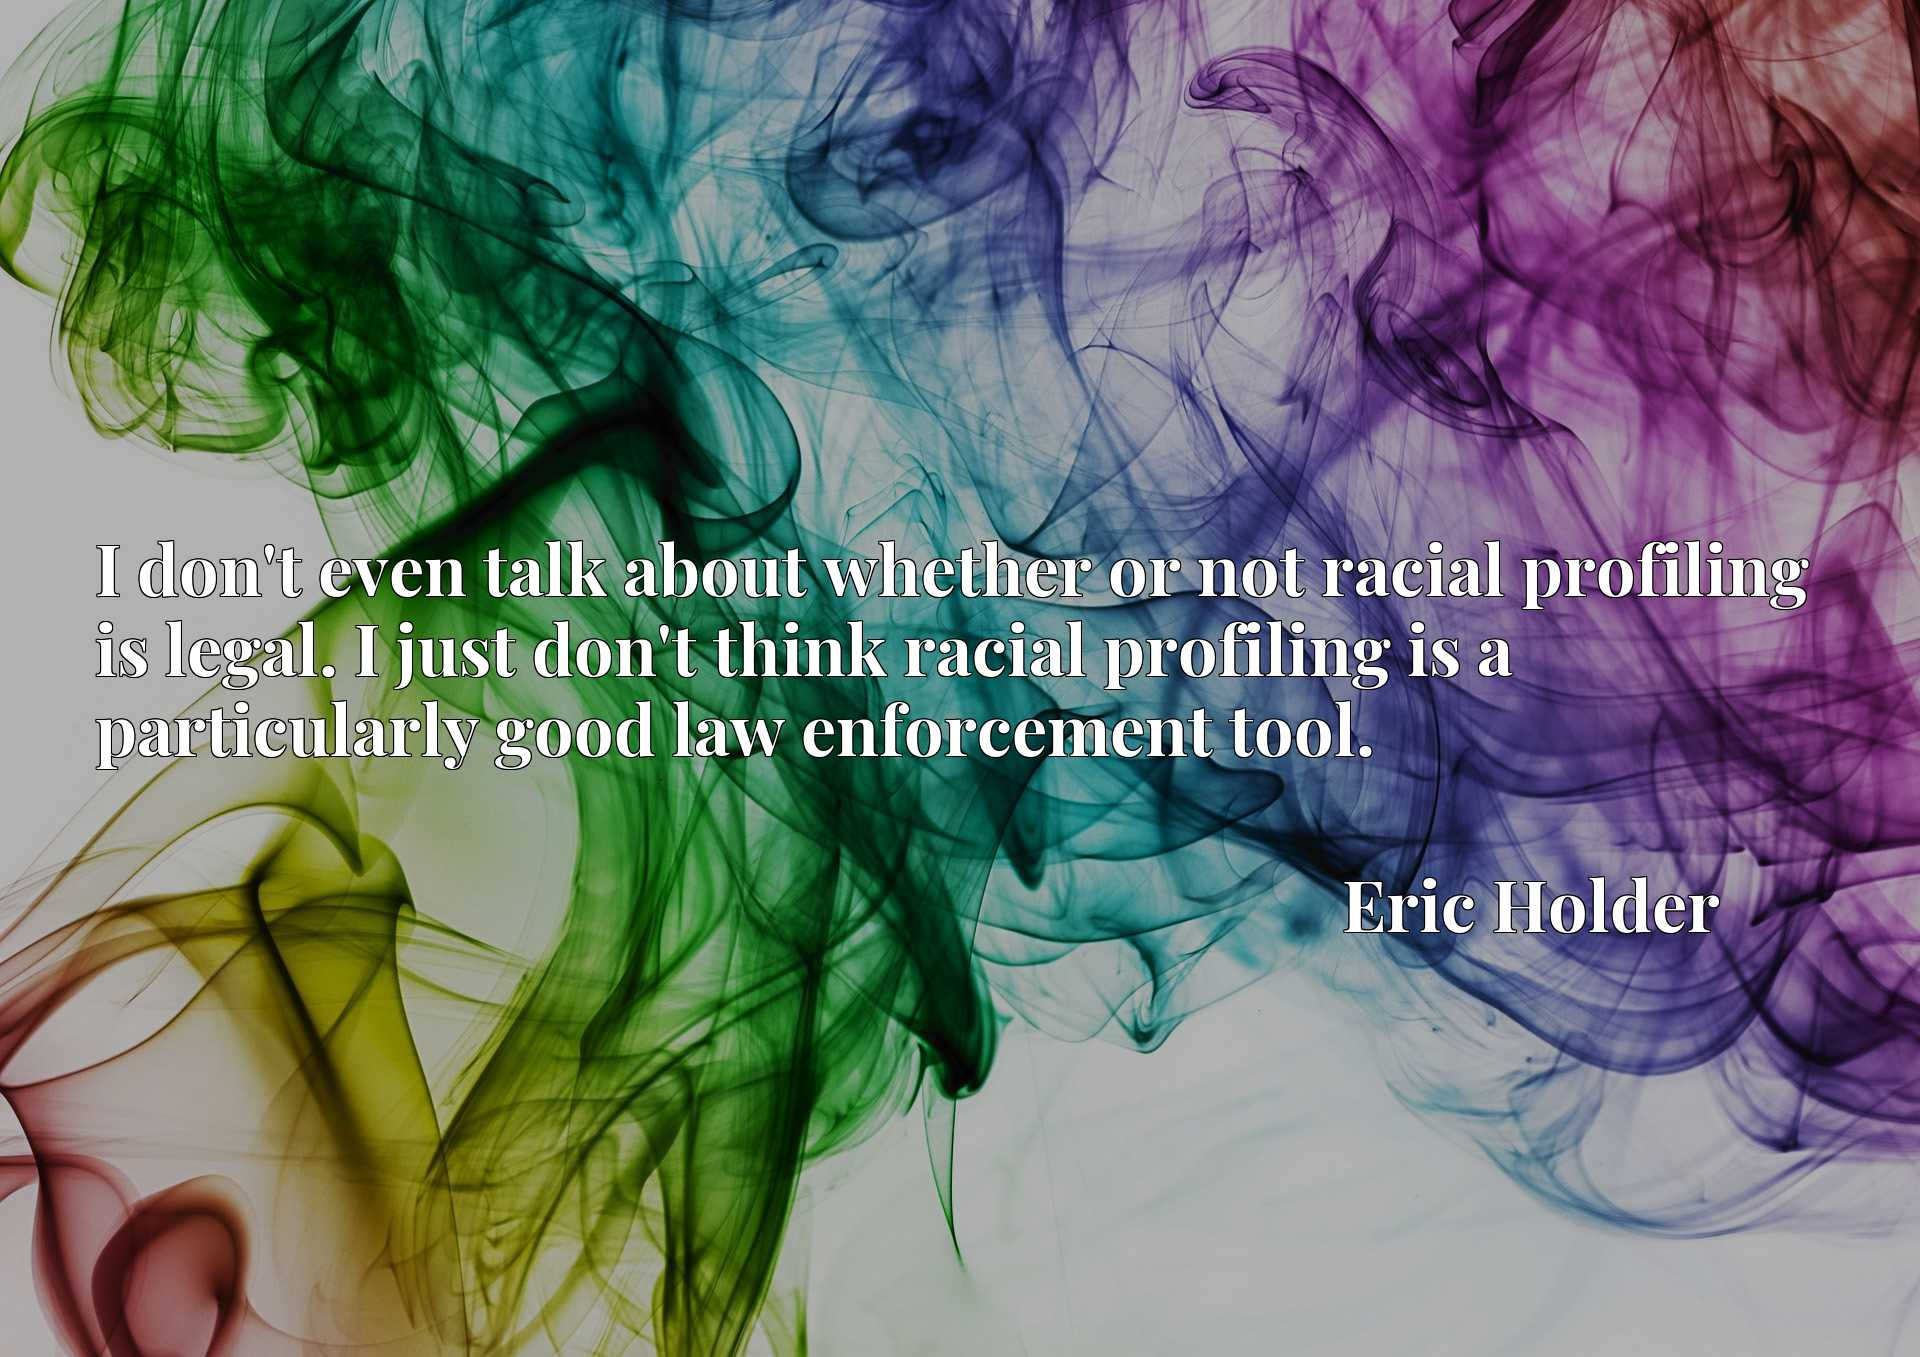 Quote Picture :I don't even talk about whether or not racial profiling is legal. I just don't think racial profiling is a particularly good law enforcement tool.